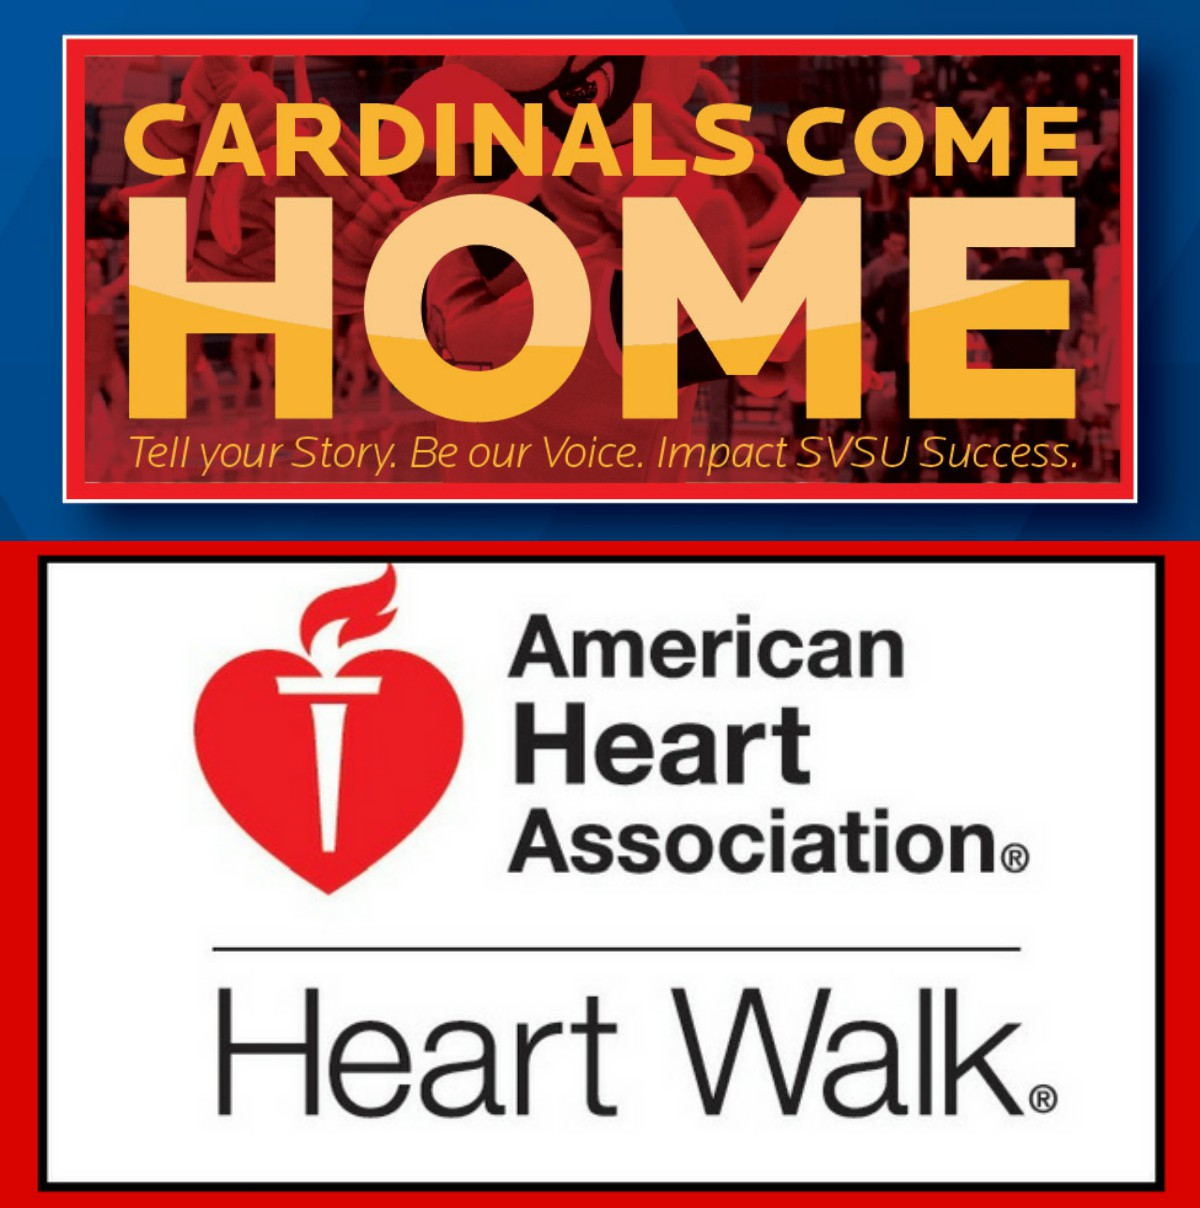 Graphic logos of Alumni Coming Home event and American Cancer Society Heart Walk